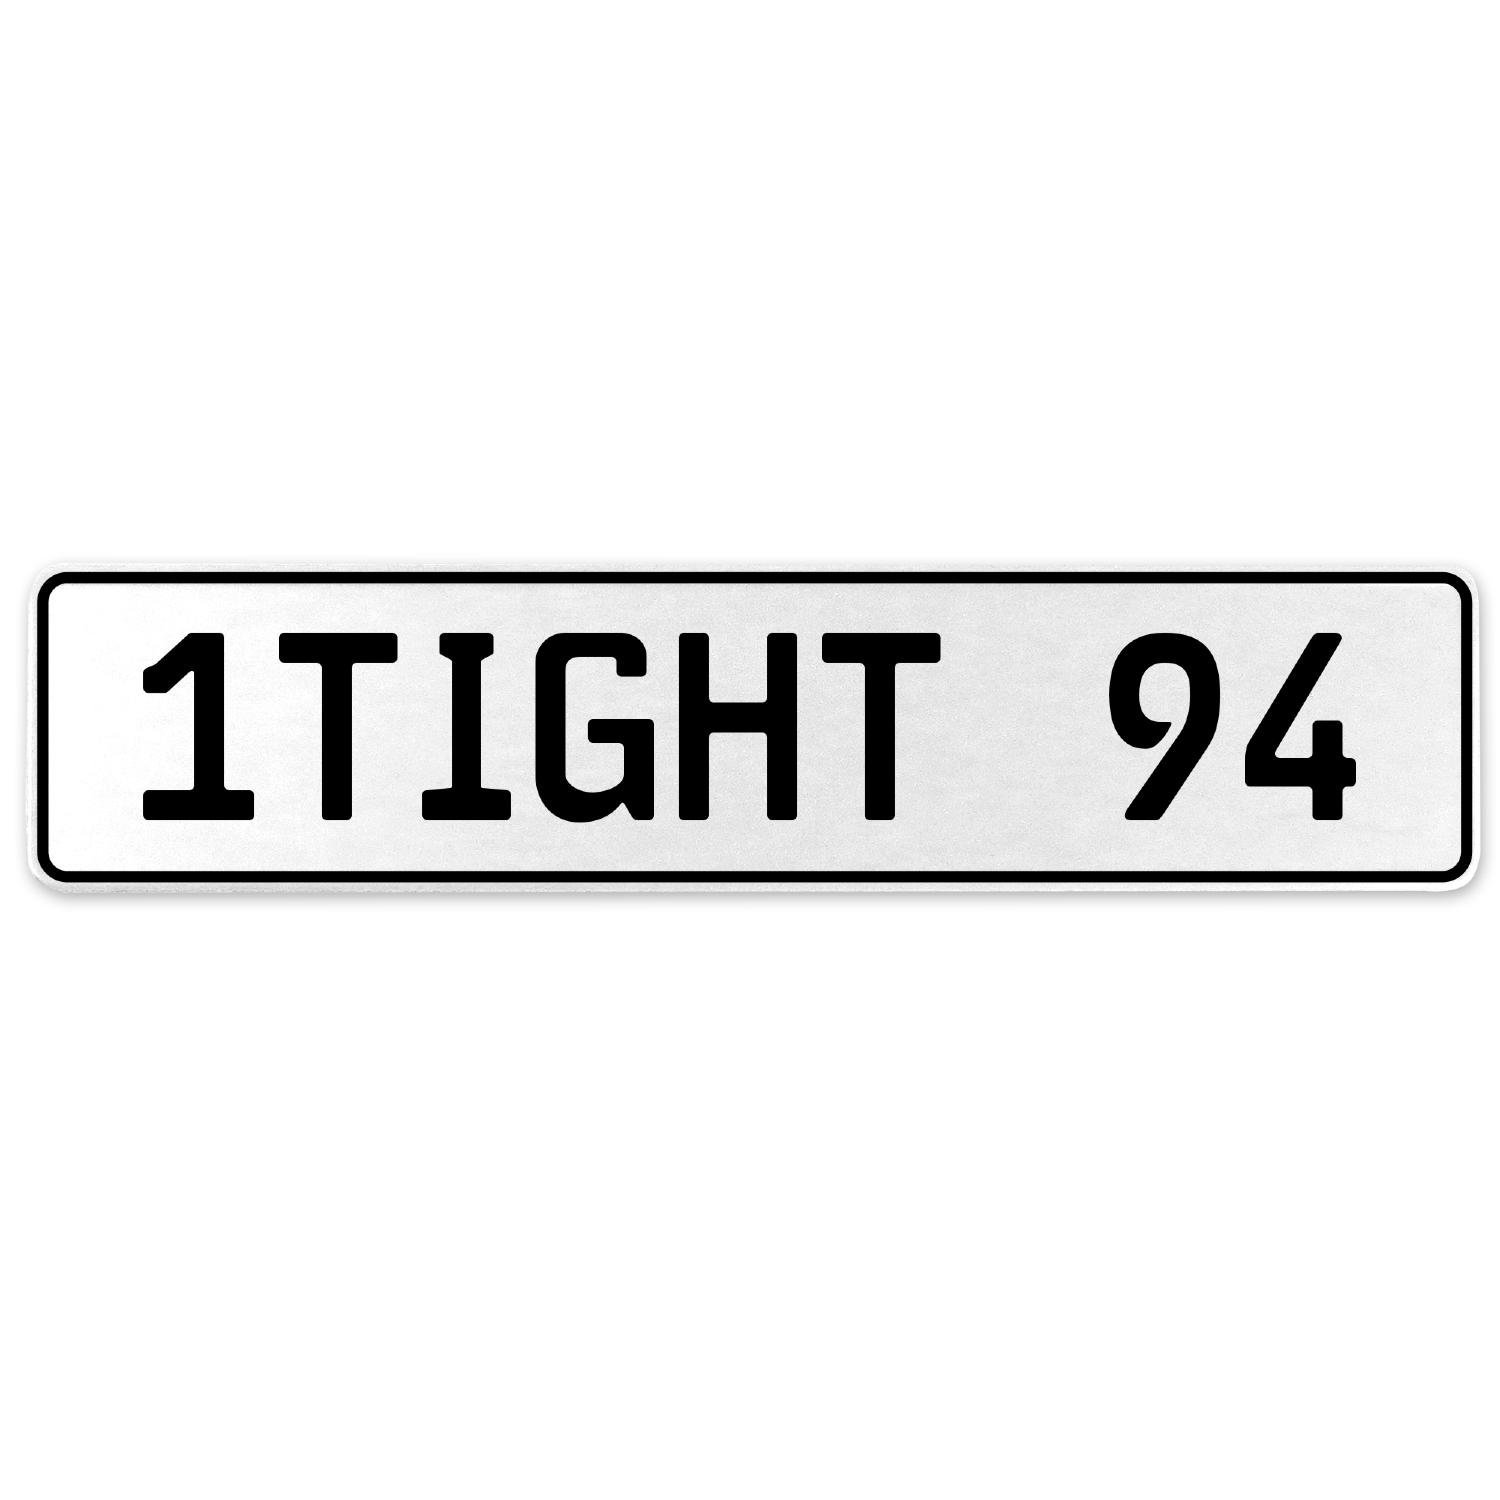 Vintage Parts 554889 1TIGHT 94 White Stamped Aluminum European License Plate